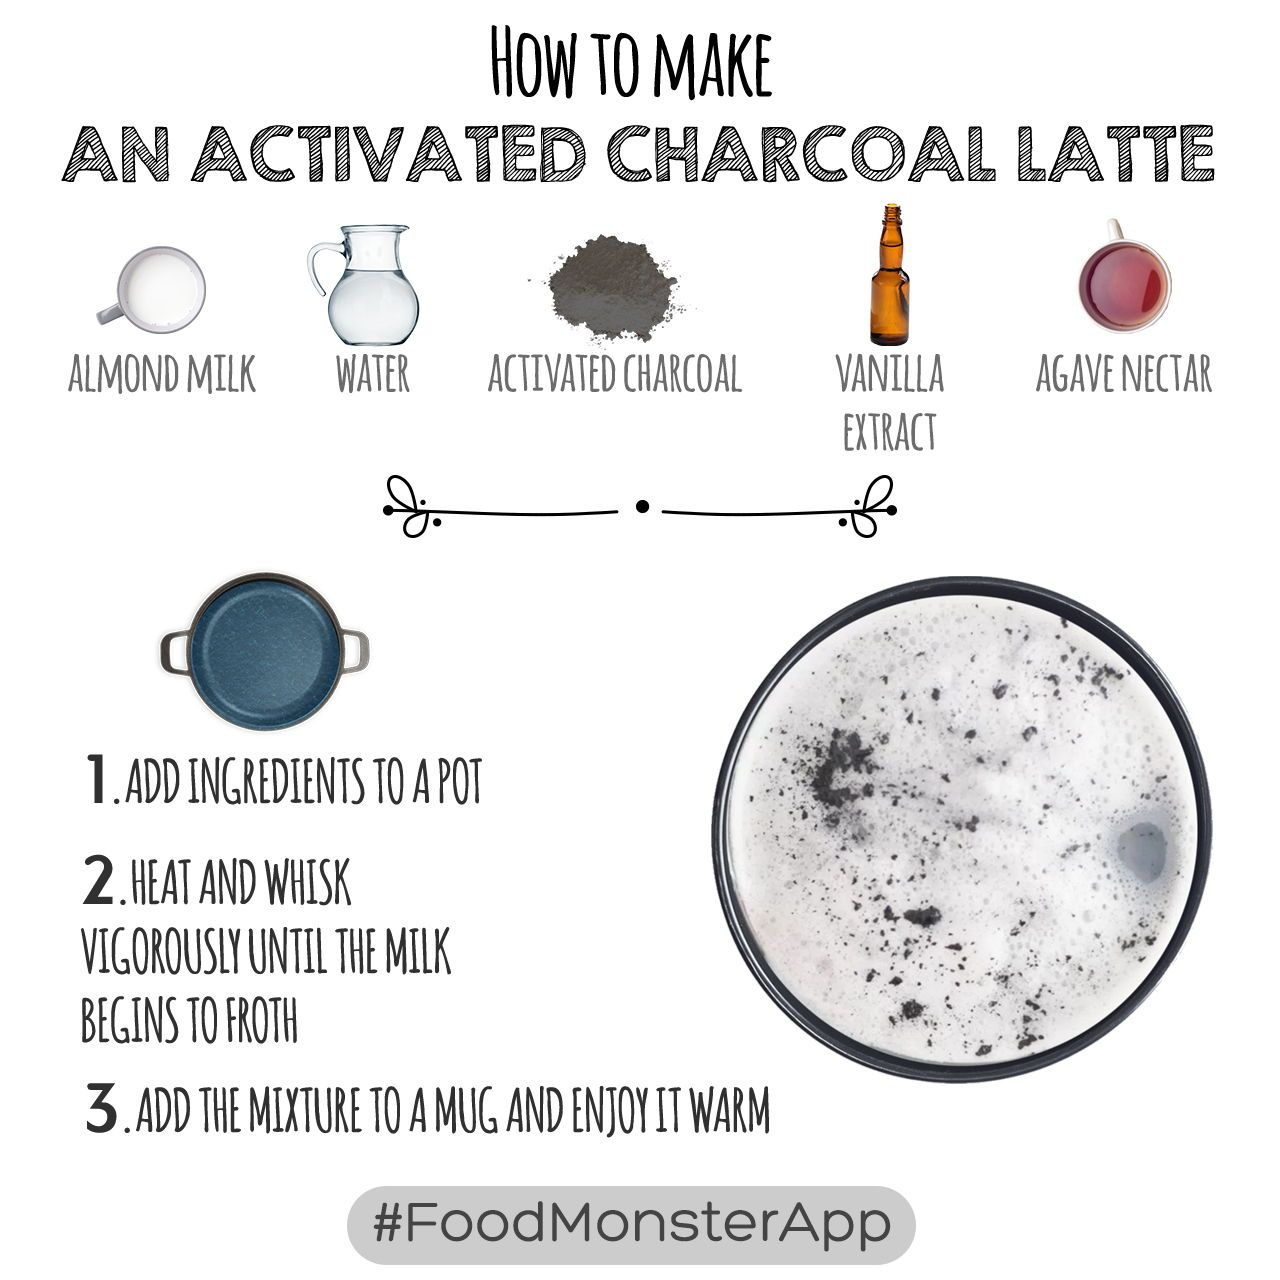 How To Make An Activated Charcoal Latte [Vegan, Gluten